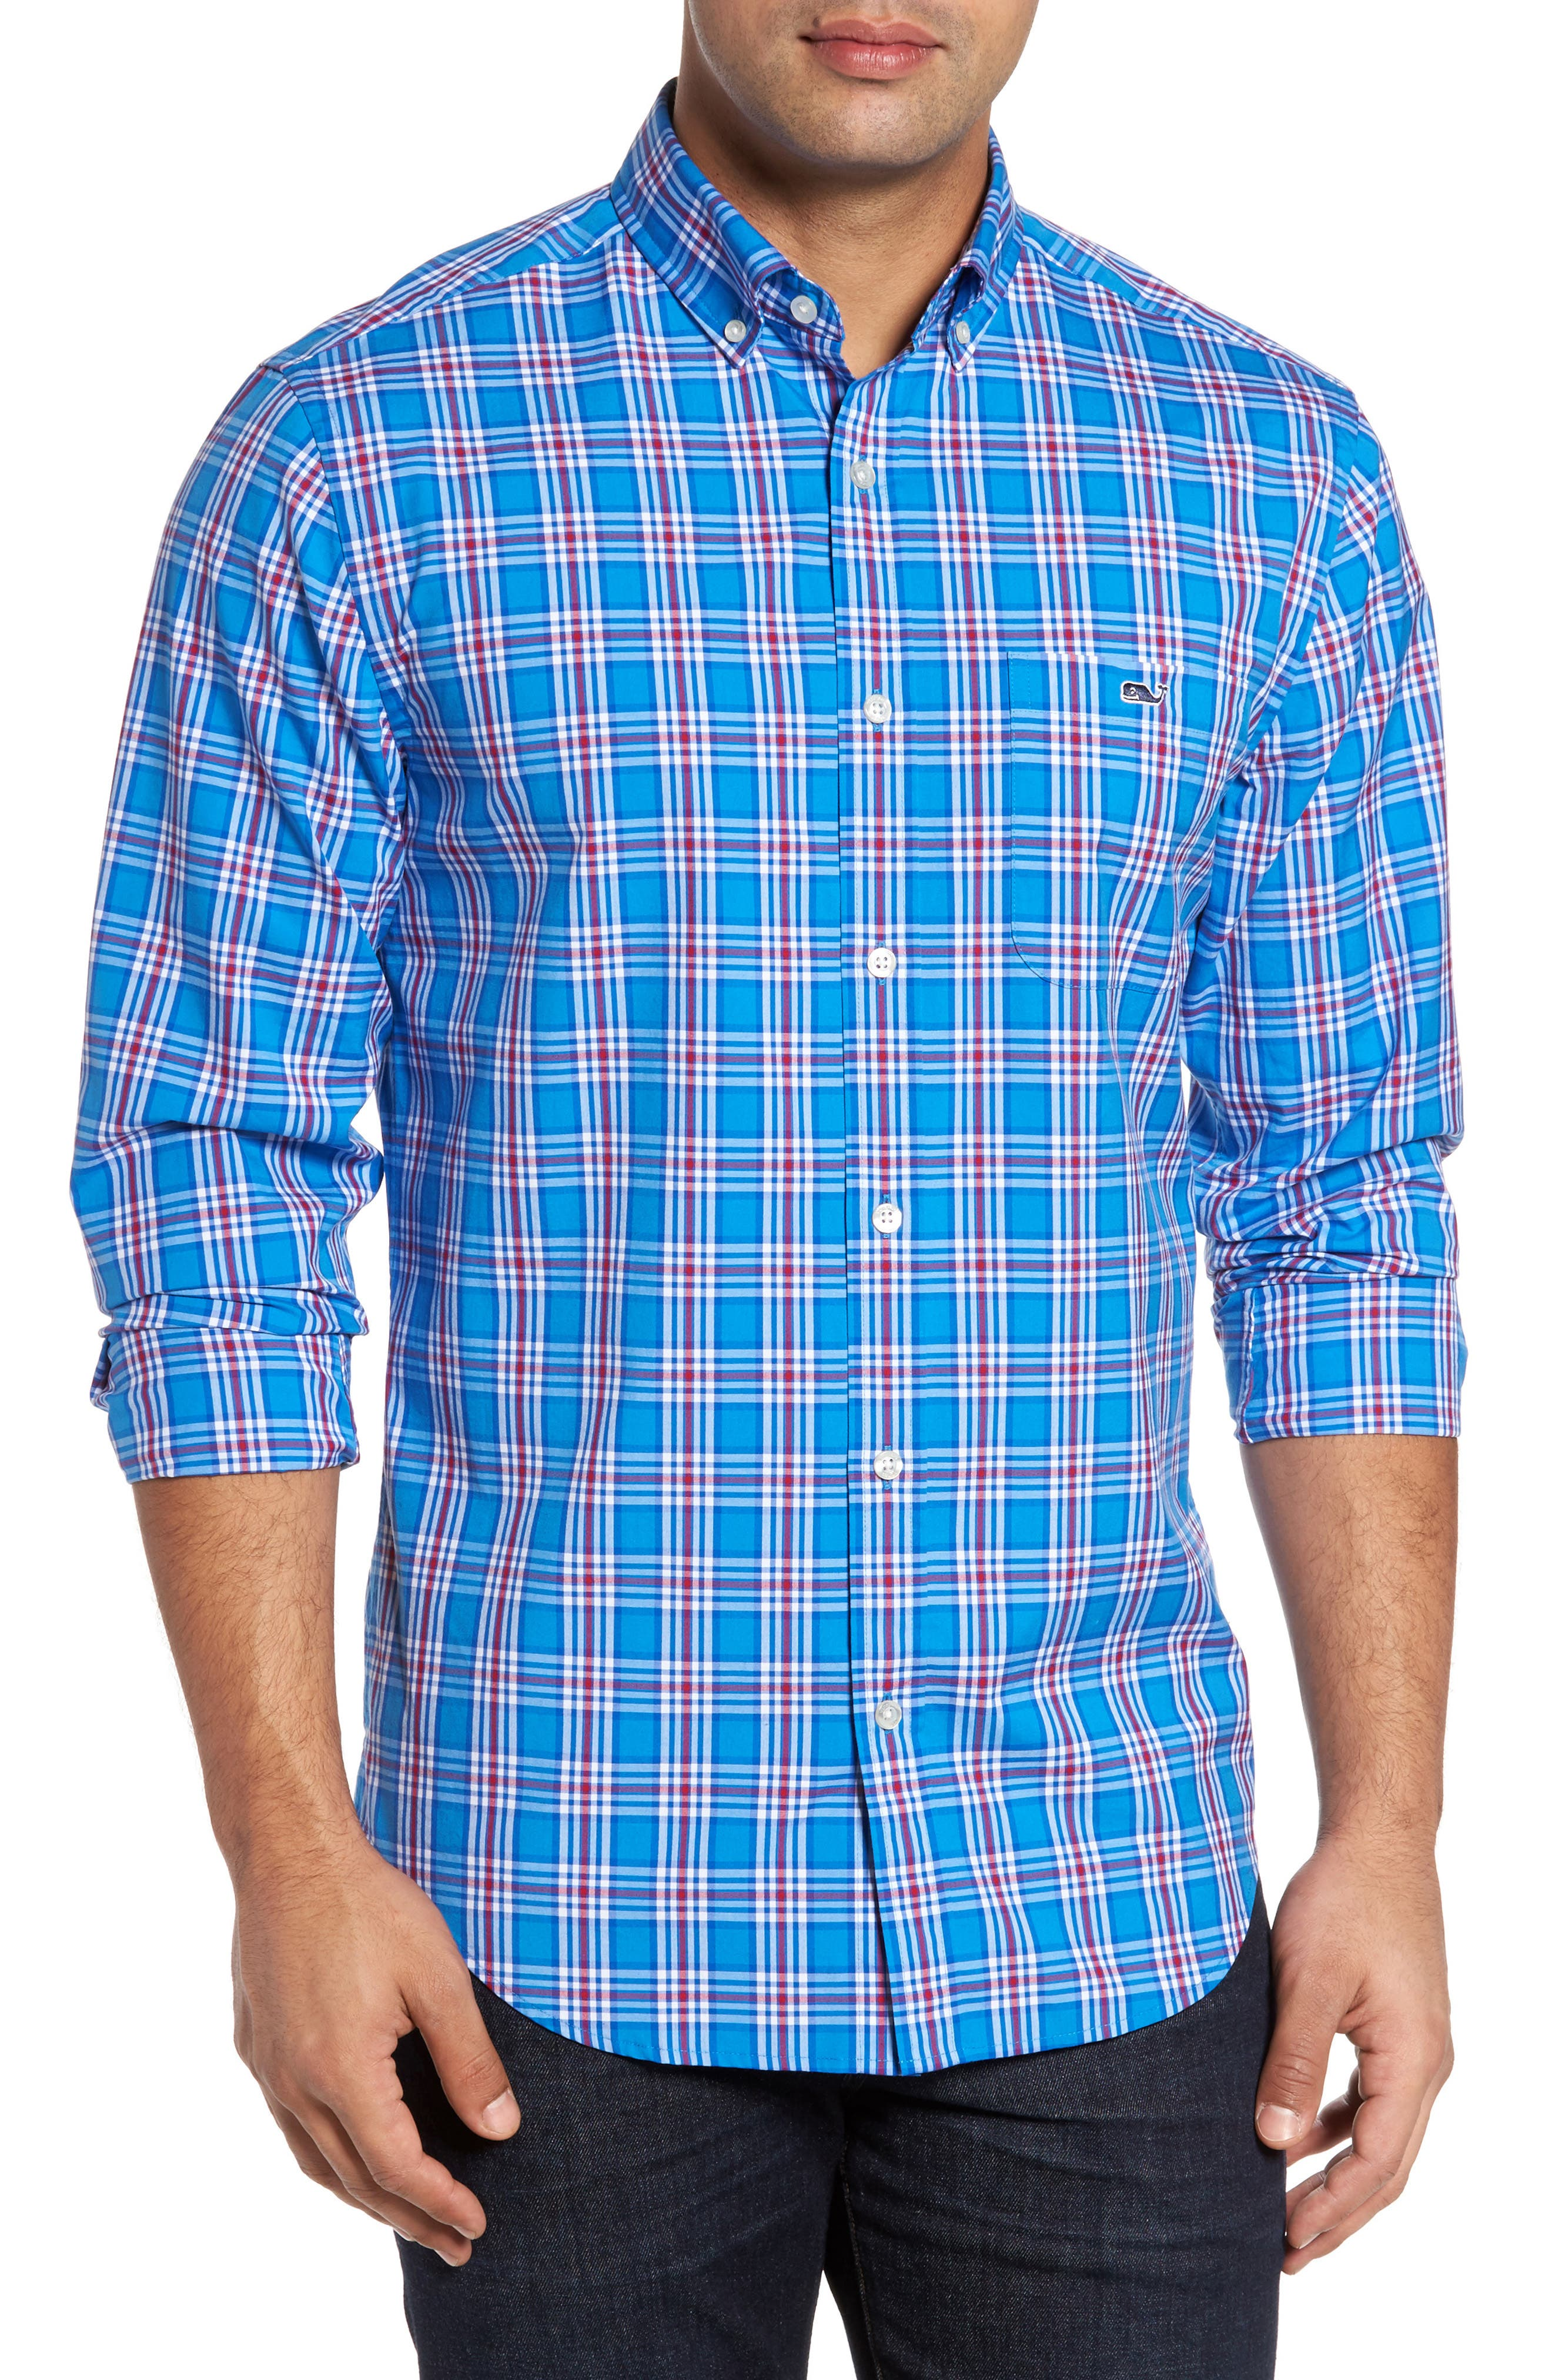 Tucker Chandler Pond Classic Fit Plaid Sport Shirt,                         Main,                         color, 400